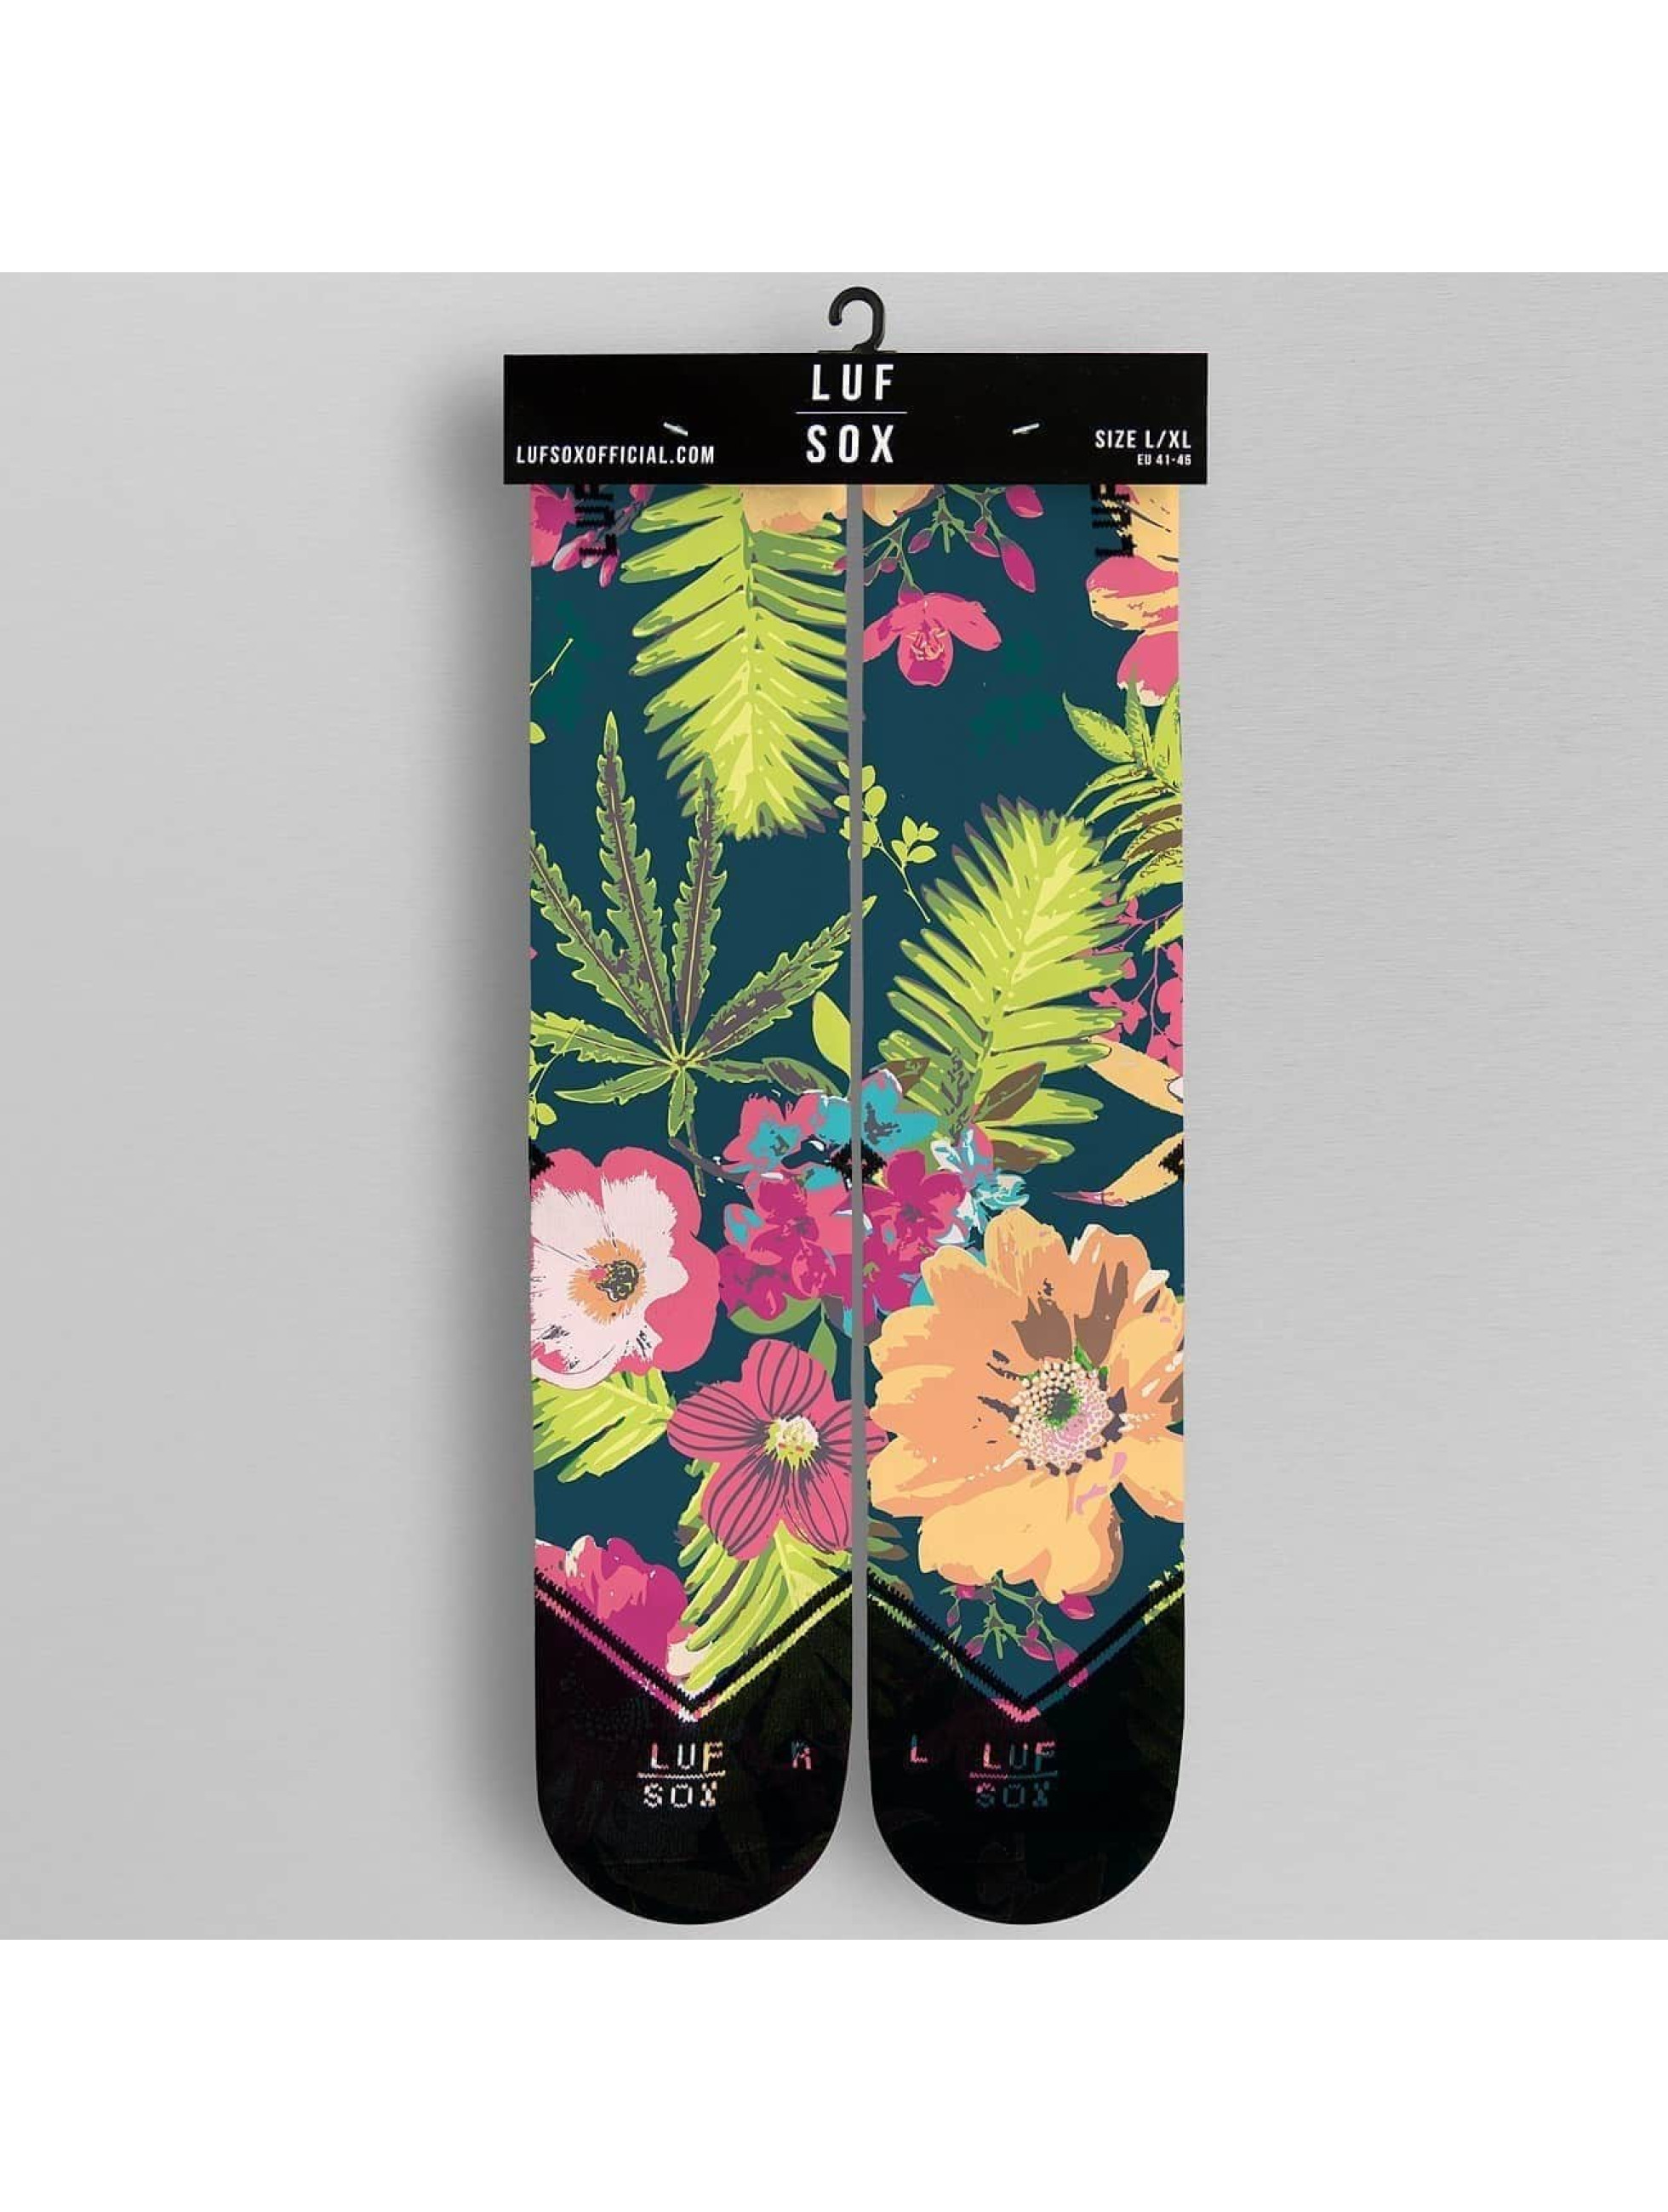 LUF SOX Socks Tropic colored